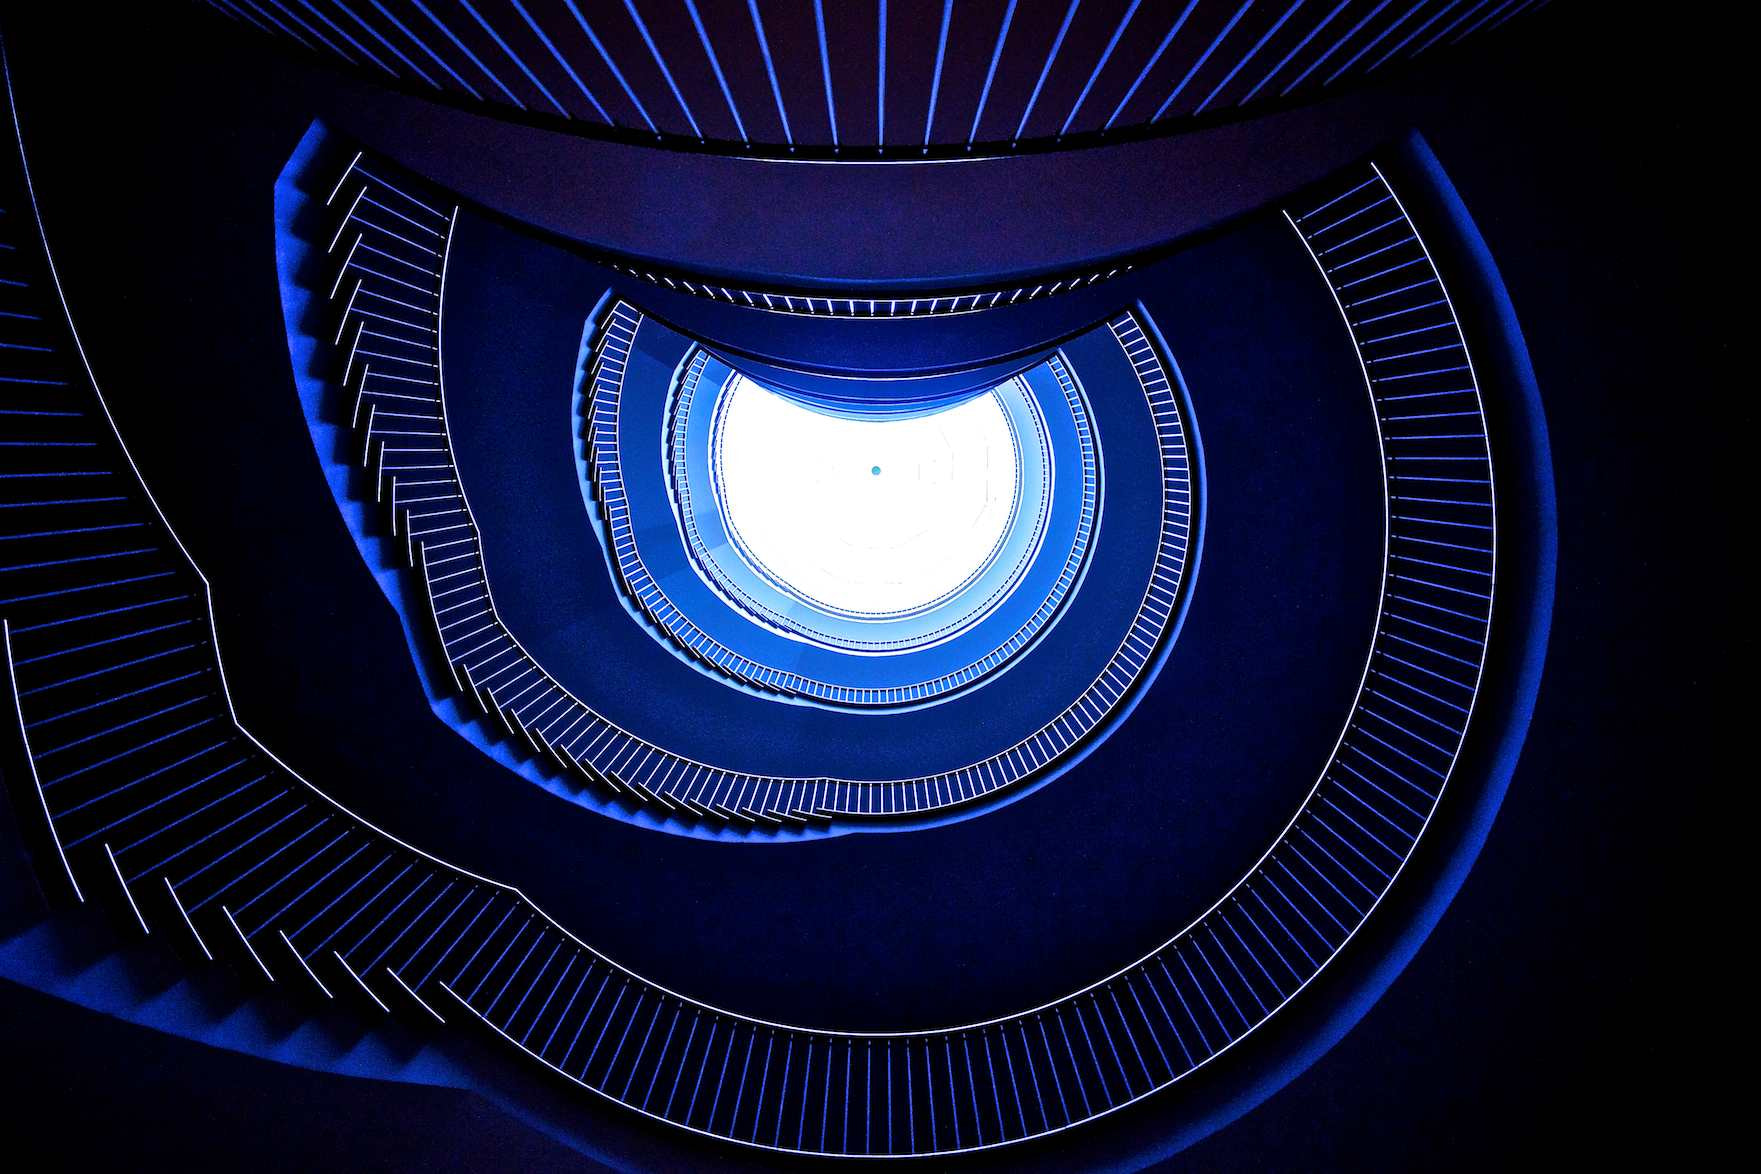 Photograph Staircase Abstraction II by Thomas Bonfert on 500px